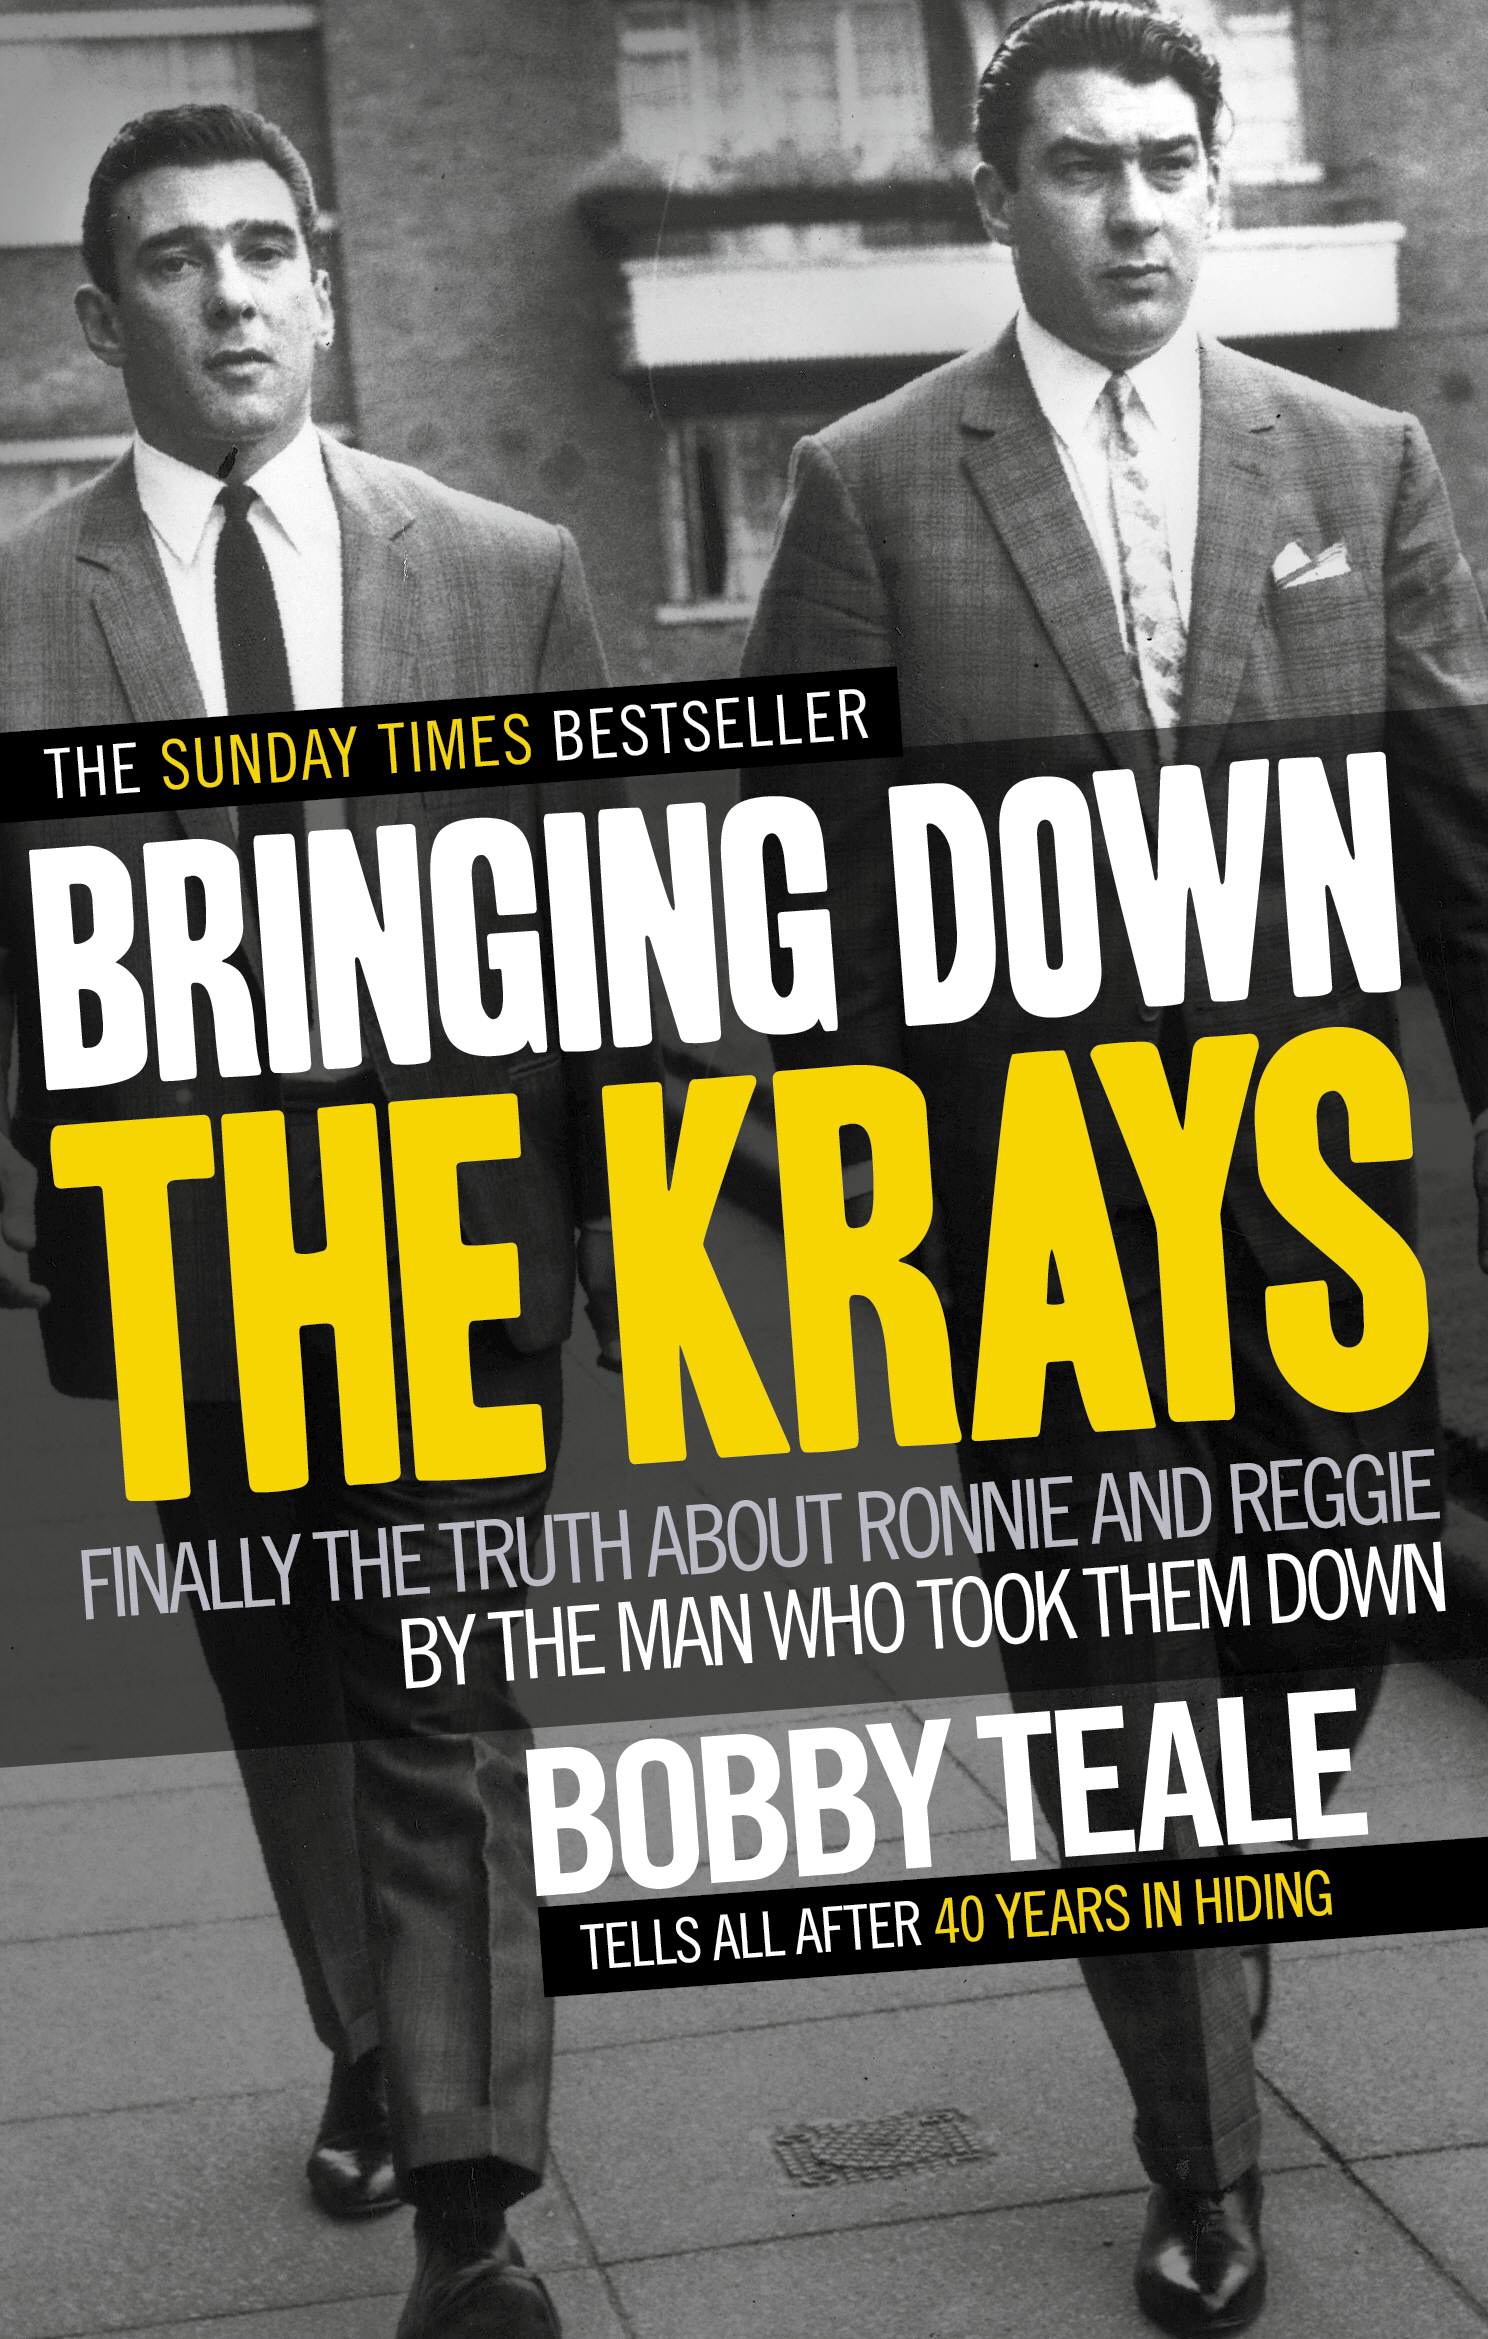 Bringing Down The Krays Finally the truth about Ronnie and Reggie by the man who took them down